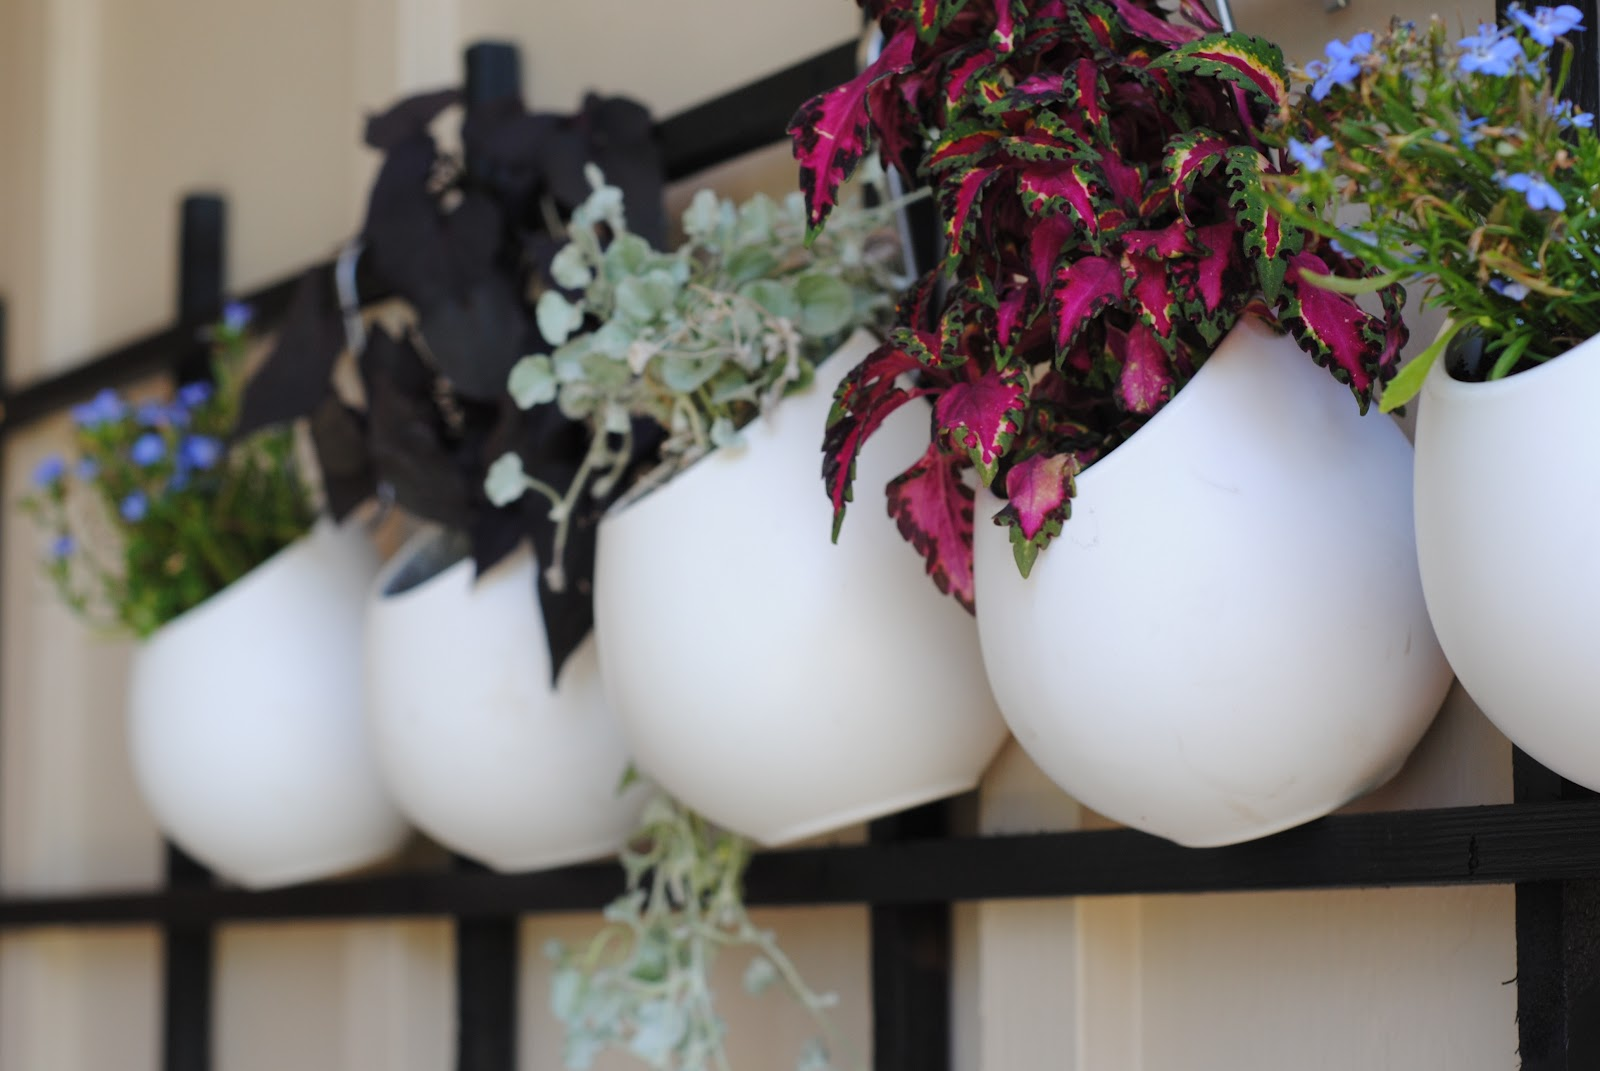 Hangplant Ikea Refresh Your Nest Link Up Garden And Outdoor Living Ideas